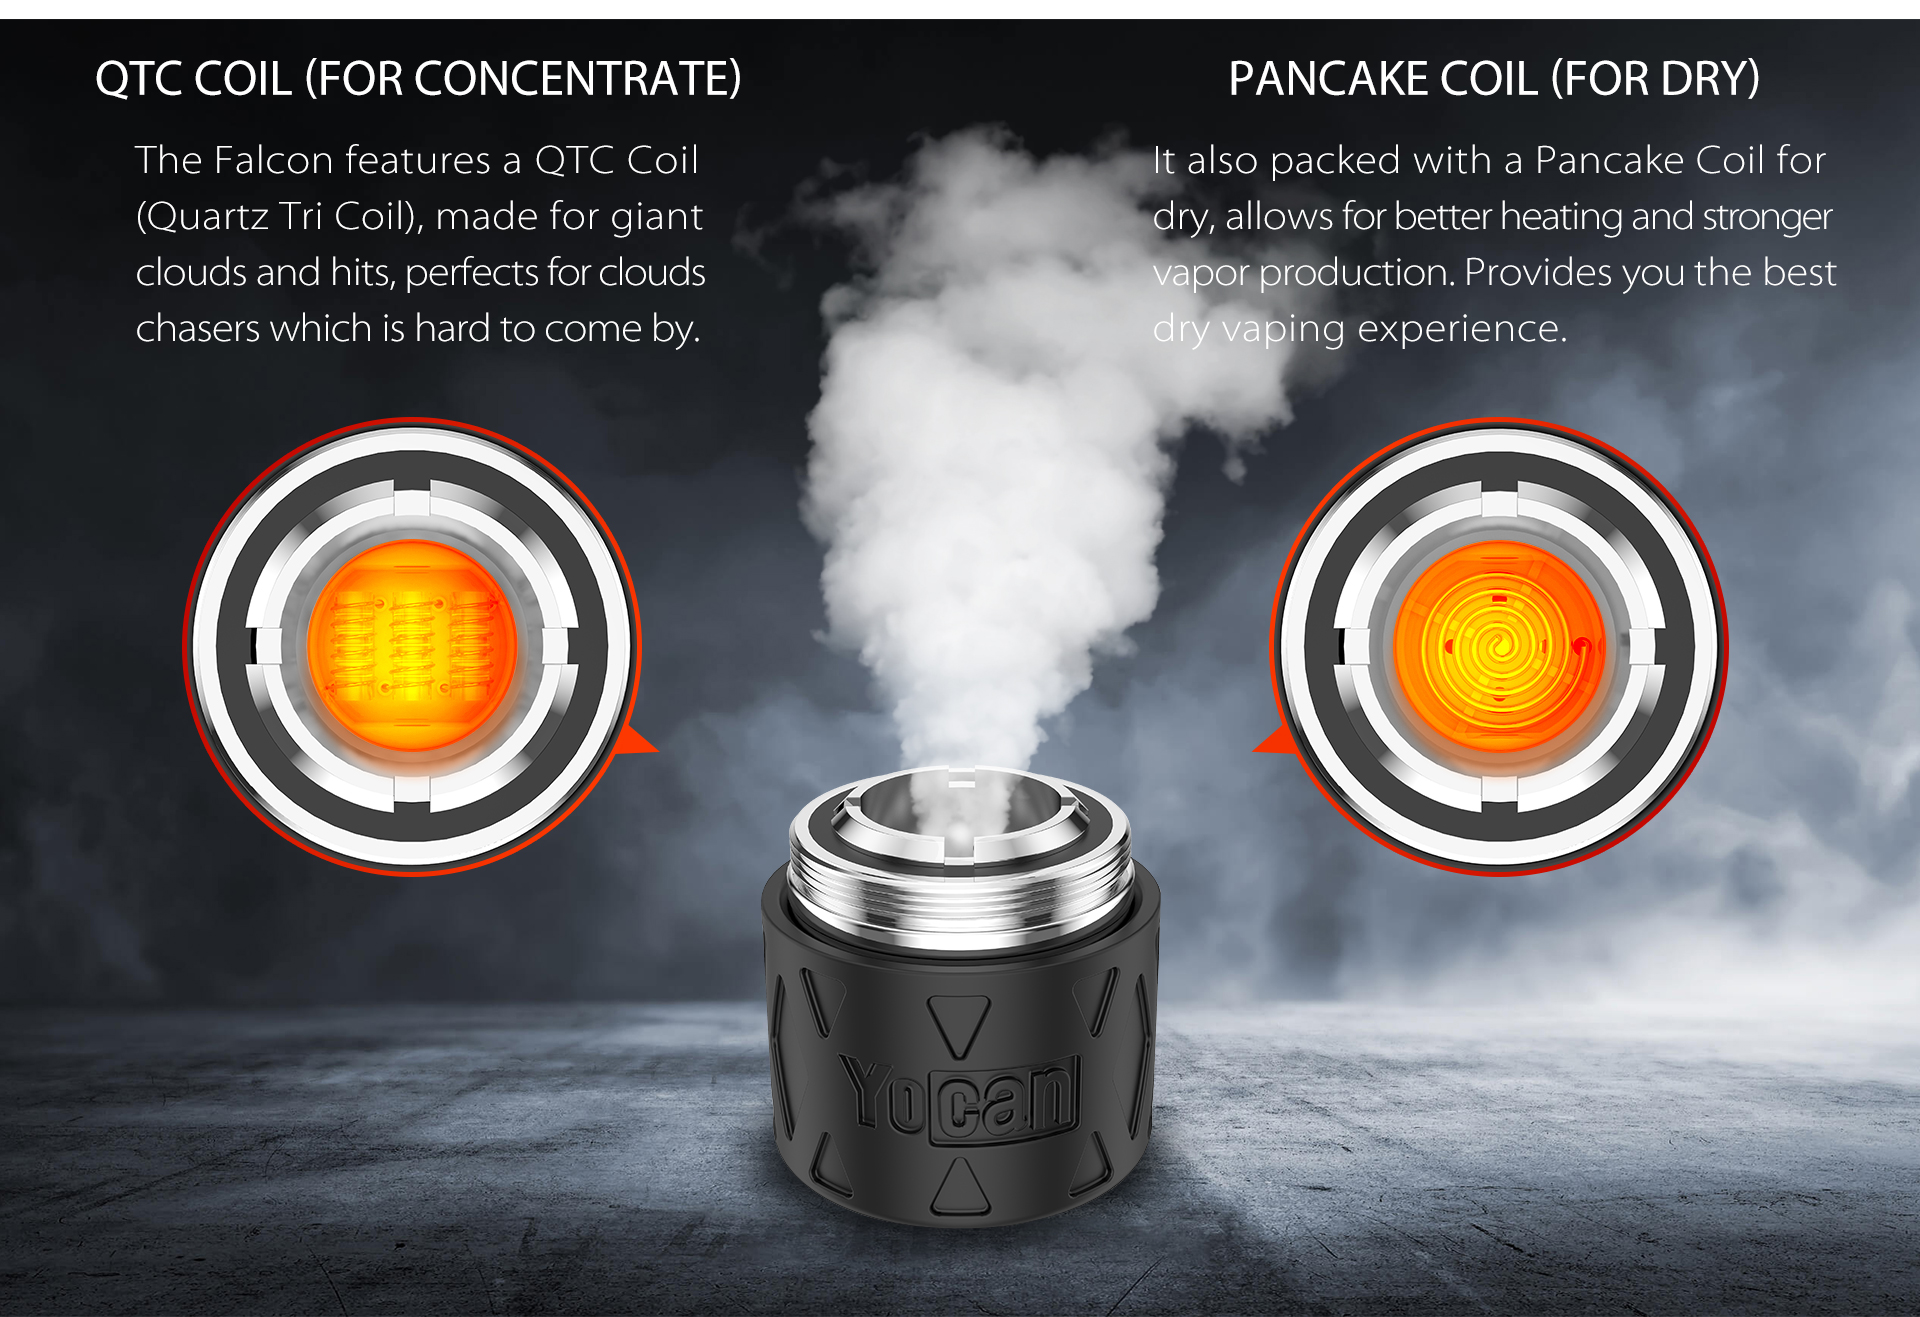 Yocan Falcon Vaporizer provides the QTC coil and Pancake coil.